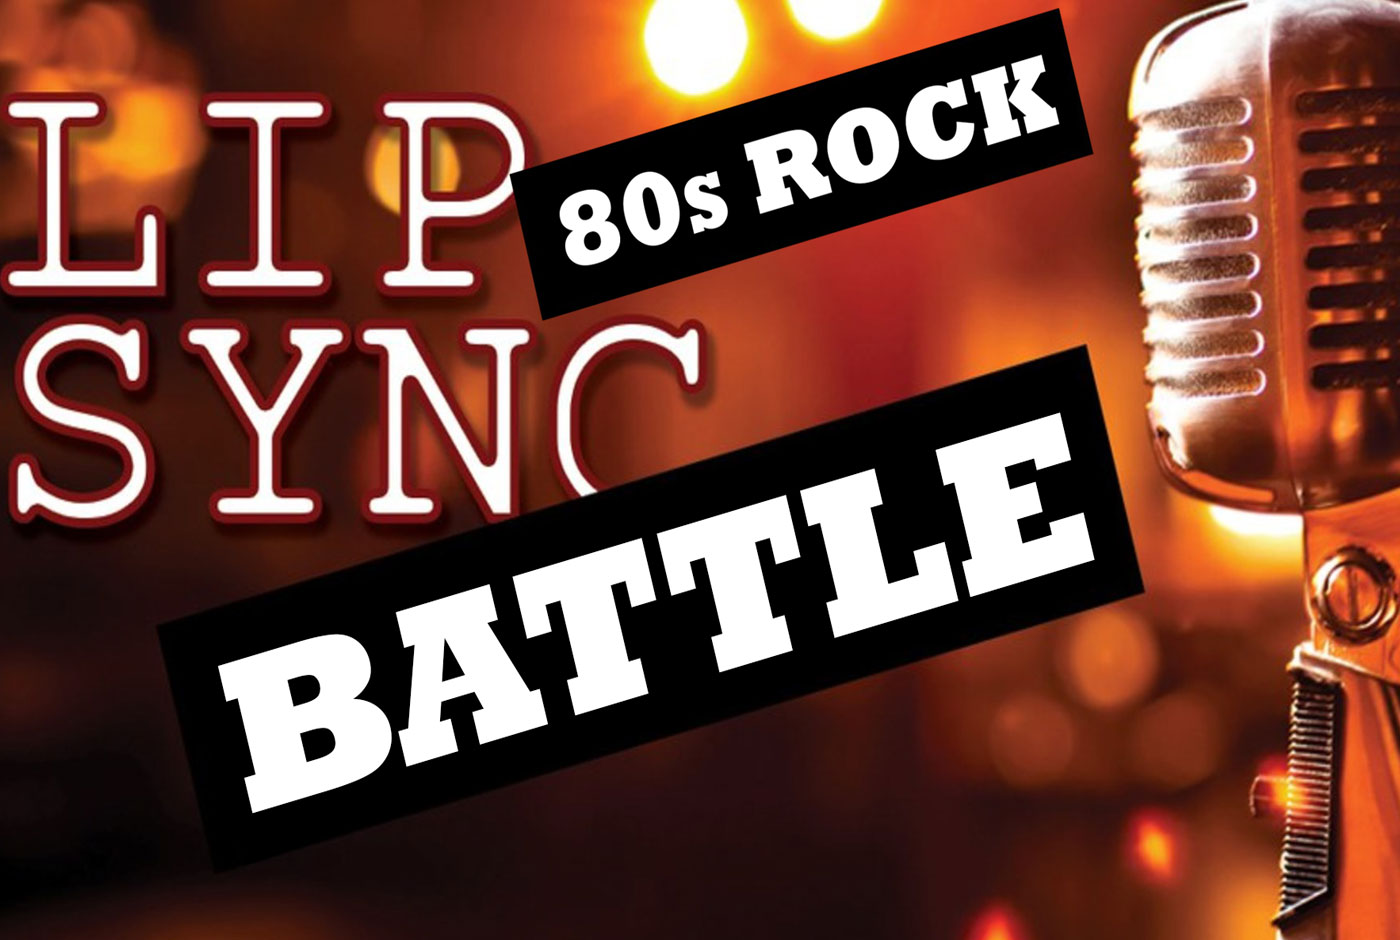 21st-Amendment-and-No-Li-Brewhouse-80s-Rock-Lip-Sync-Battle-calendar